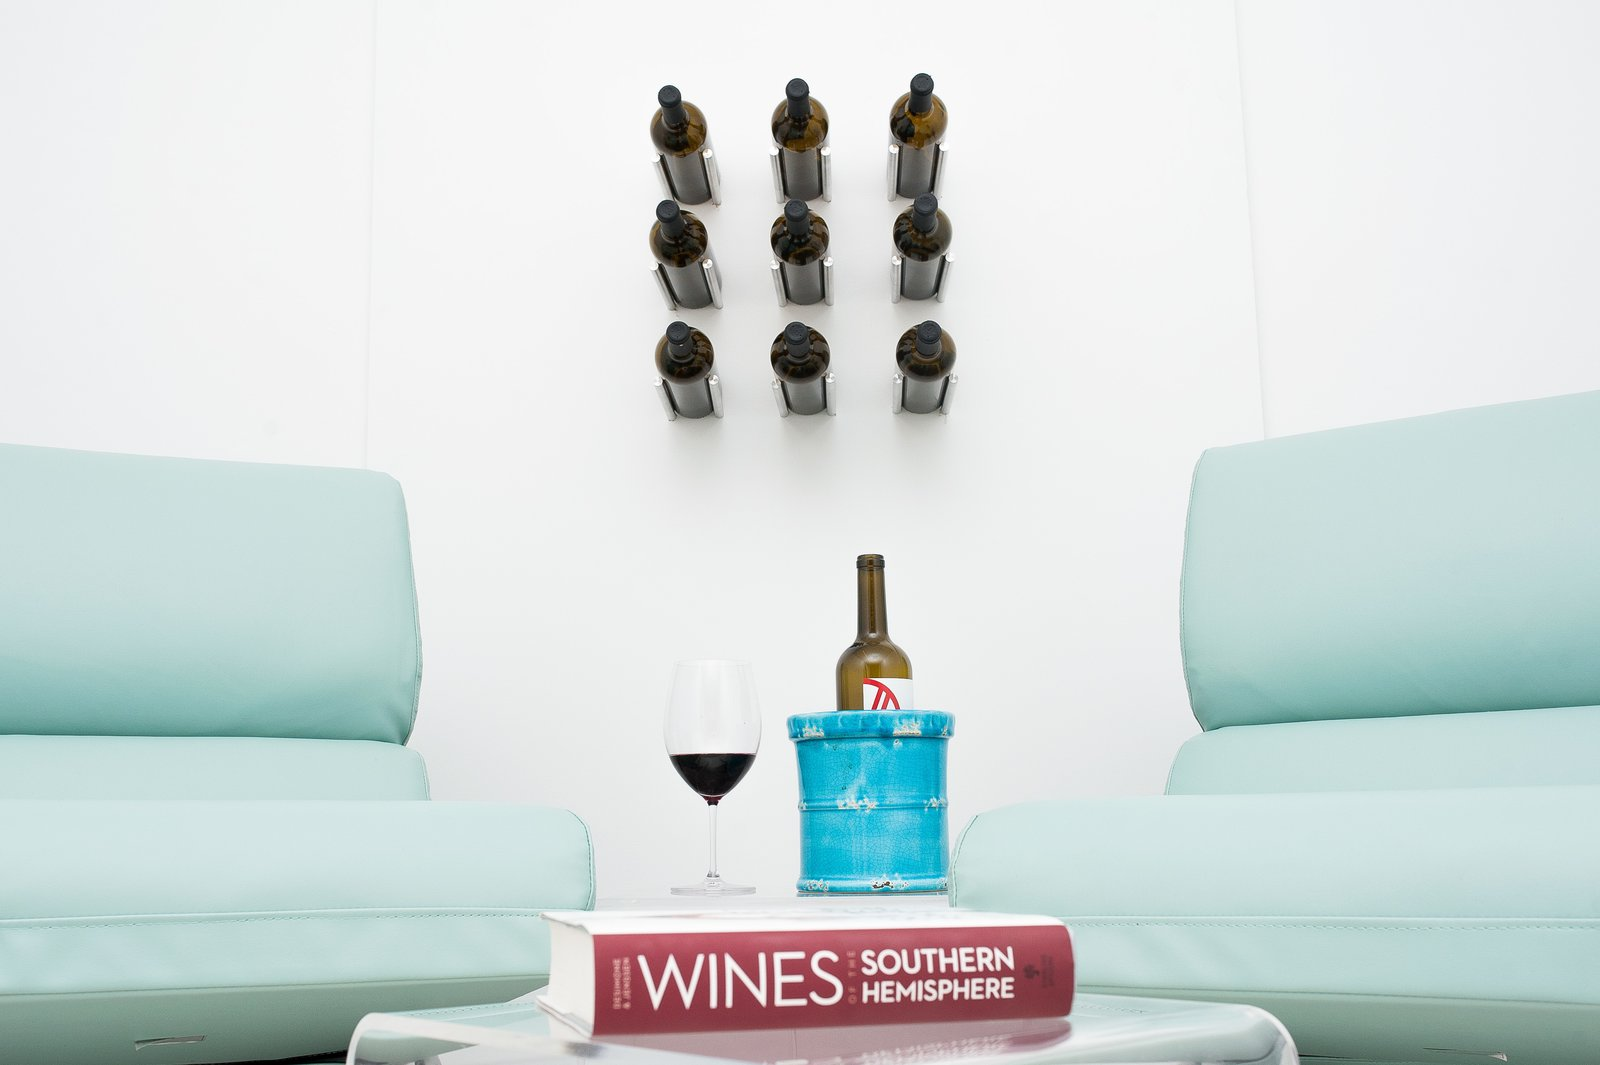 """Vino Rails take the traditional """"cork forward"""" wine storage design, and redefine it with contemporary style. These metal wine pegs attach direct to any wall surface, even drywall.   Vino Series Metal Wine Pegs"""